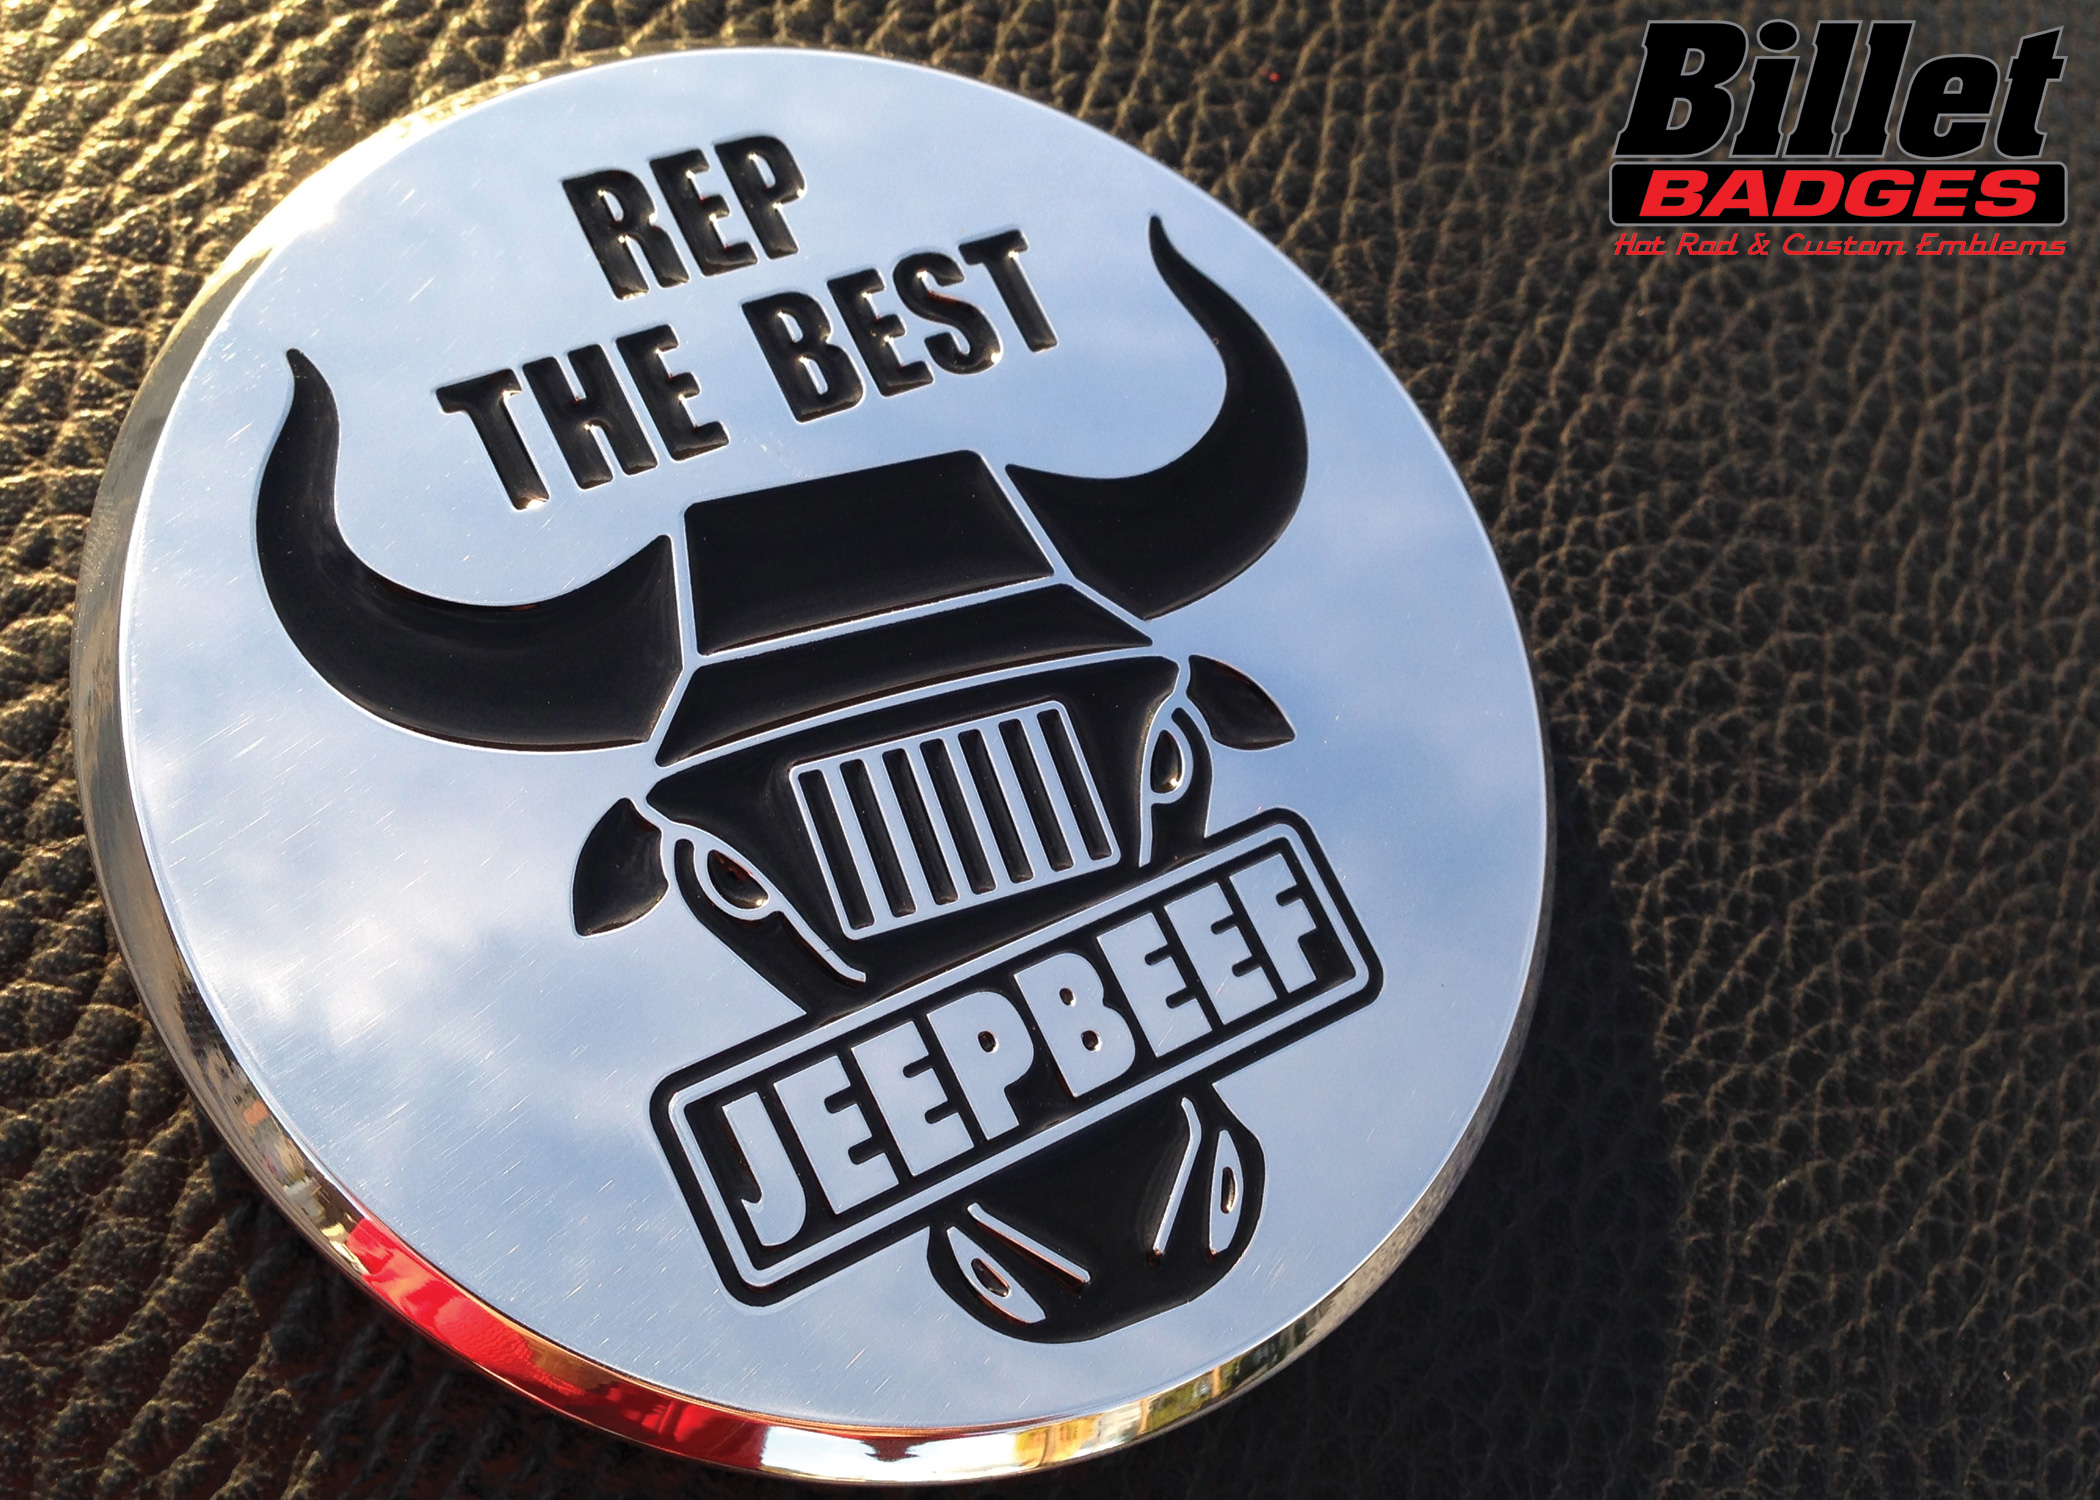 Rep the Best Jeepbeef